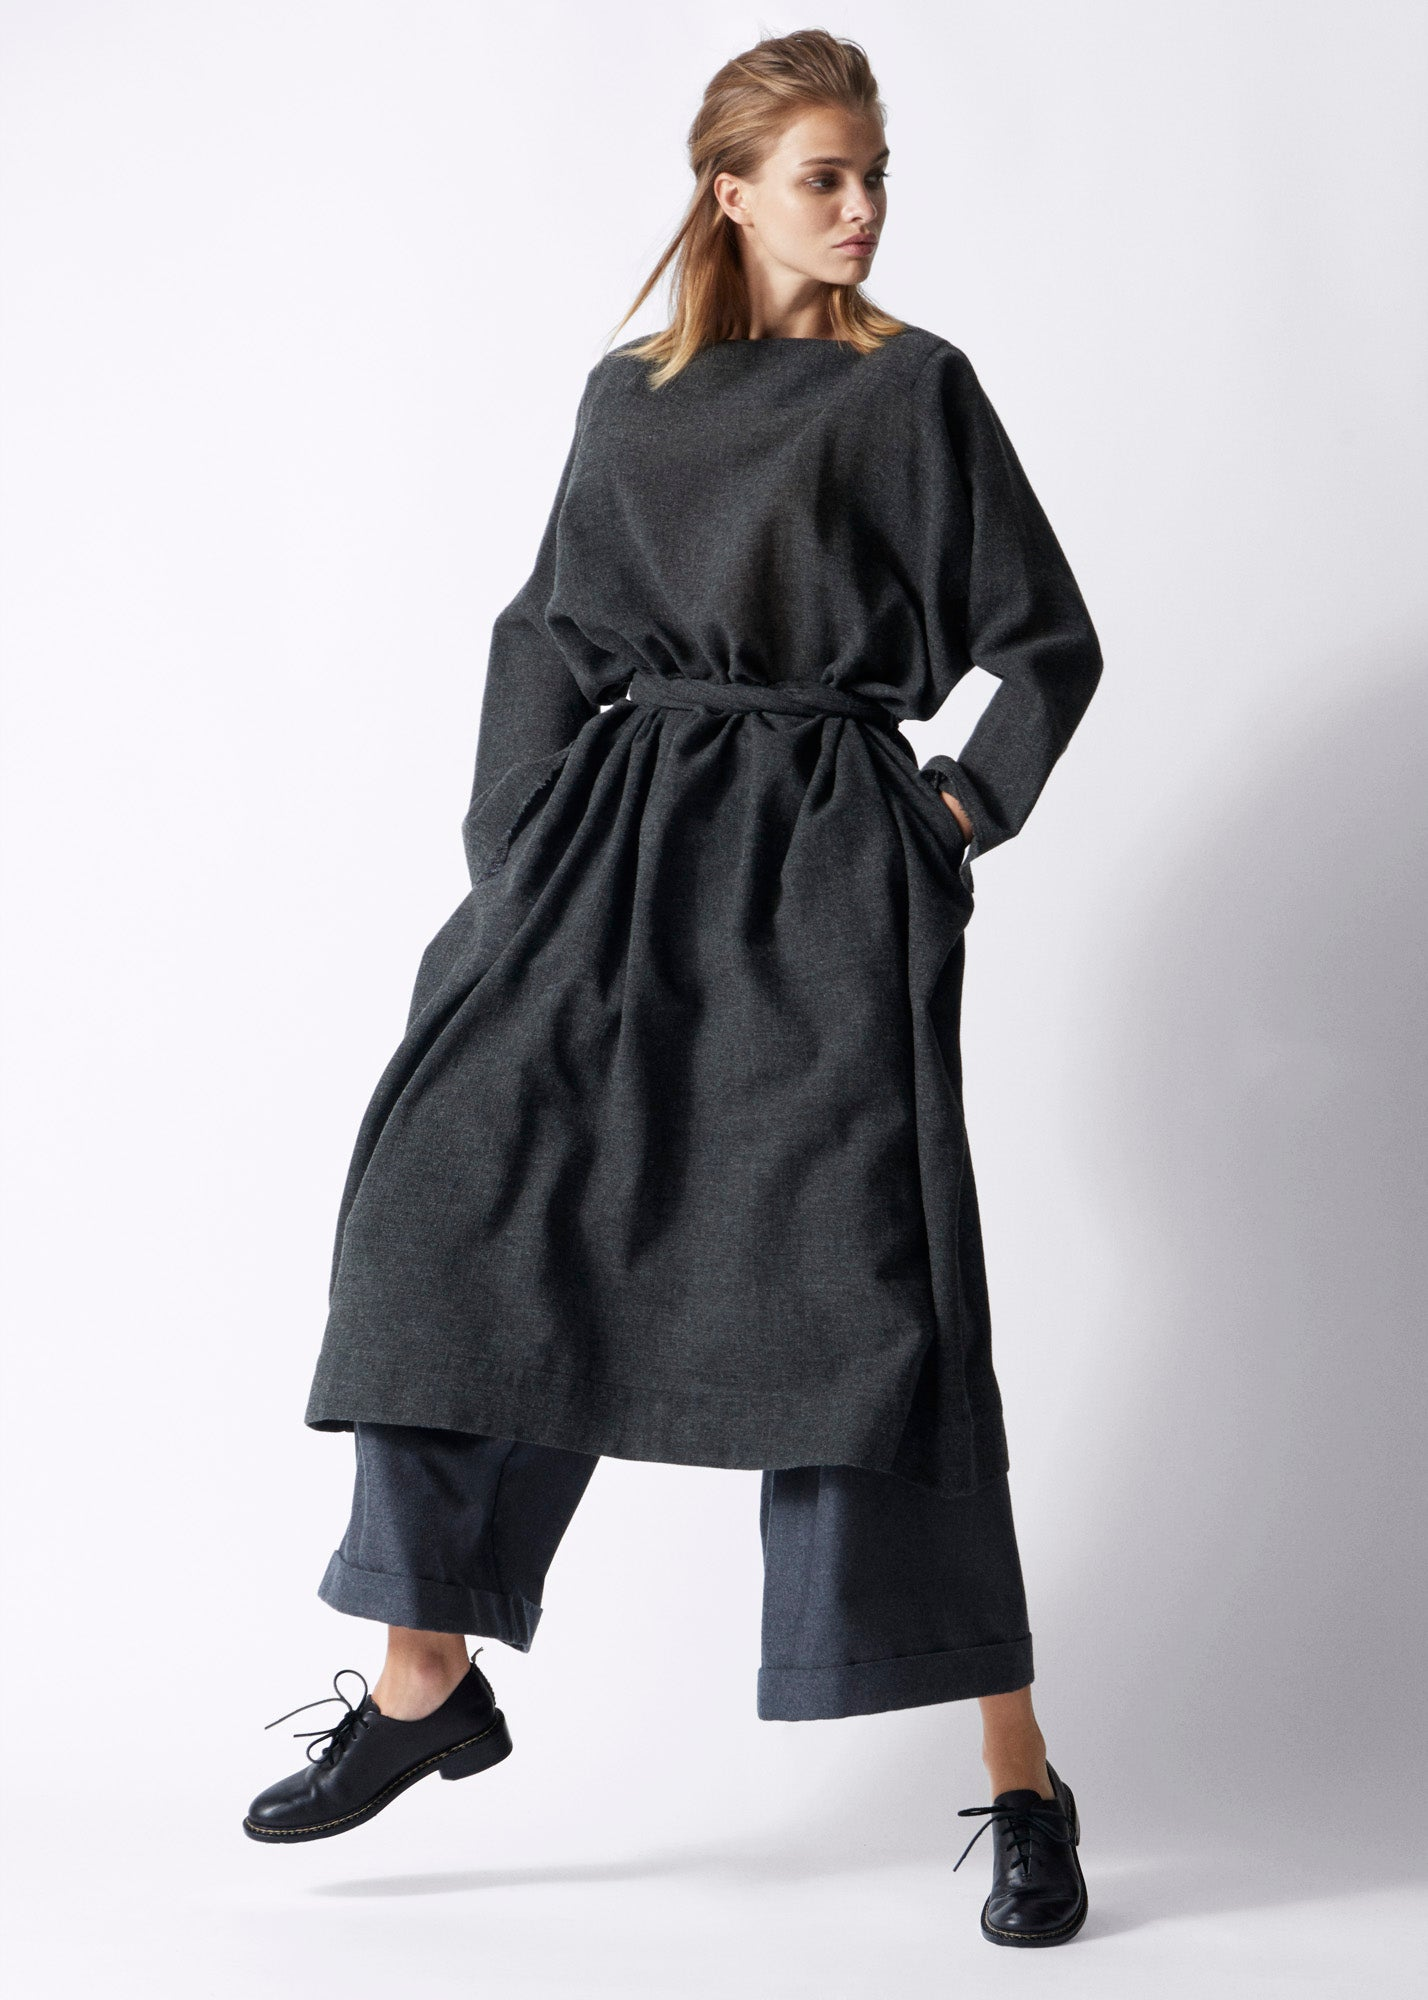 DANIELA GREGIS Luciana Dark Gray dress, Pyjama Pants, FEIT Braided Oxford Black Shoes